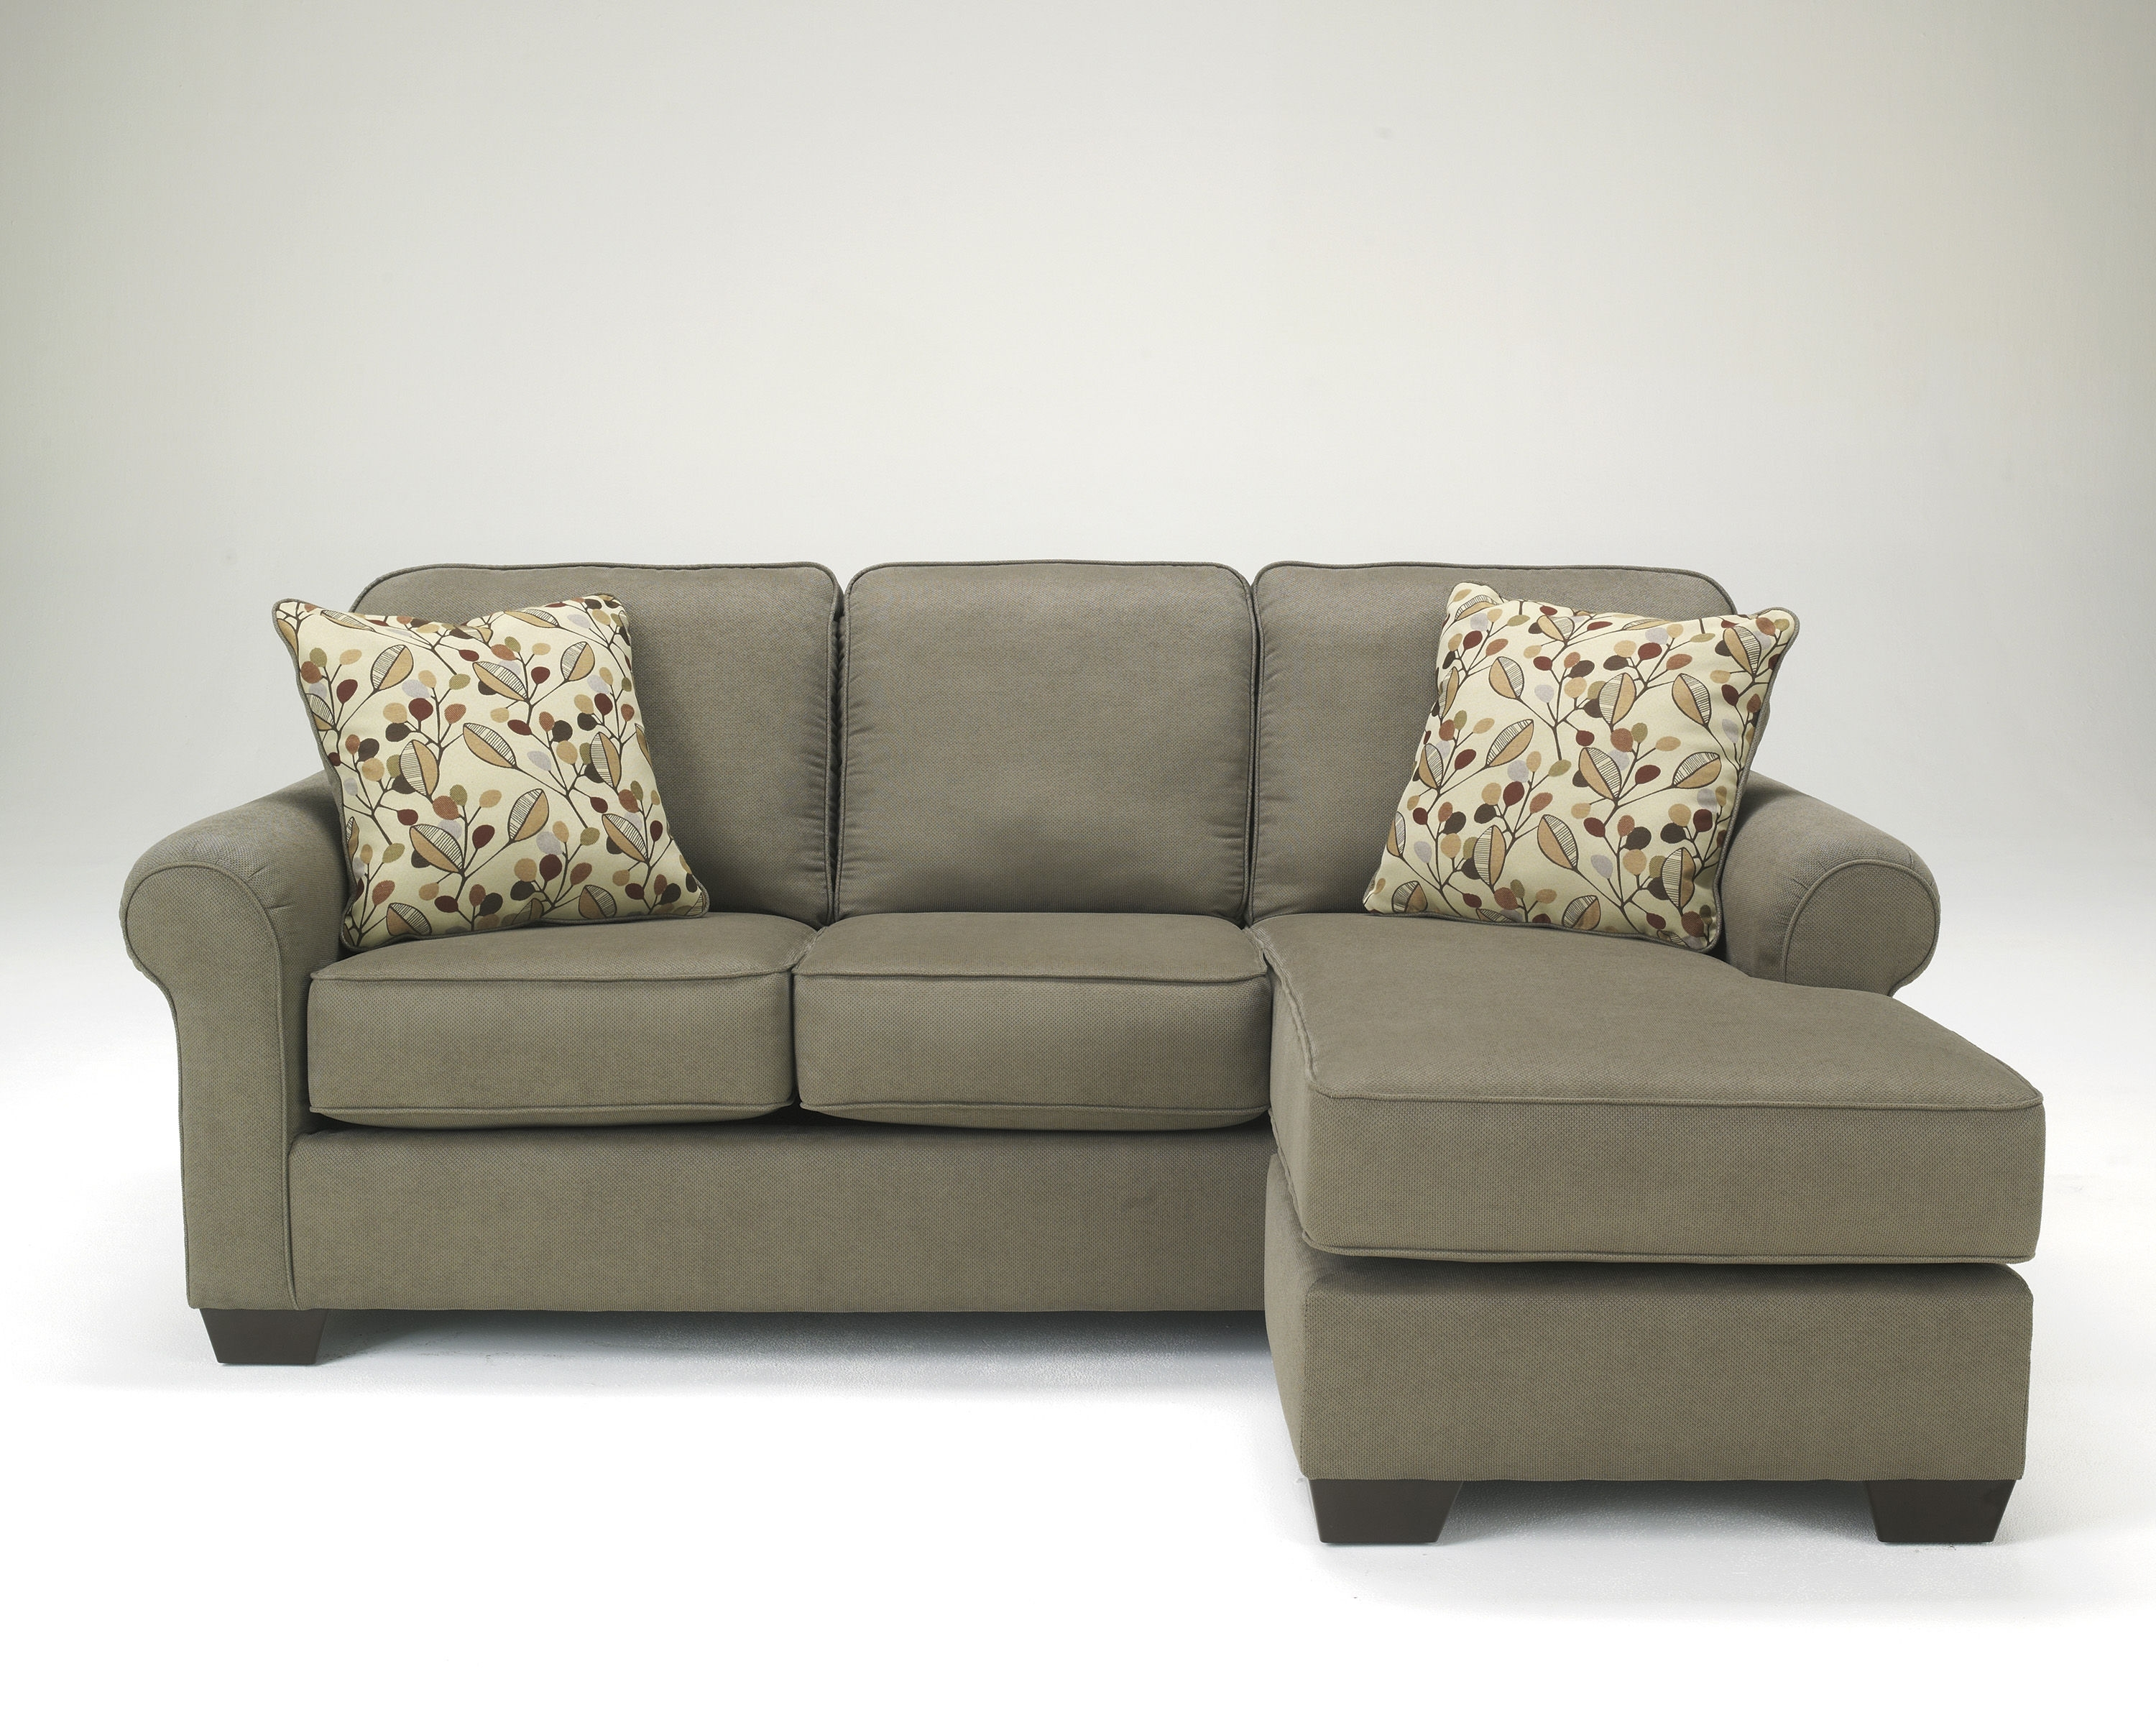 Most Popular Sofas With Chaise Intended For Ashley Furniture Danely Dusk Sofa Chaise Sectional (View 7 of 15)